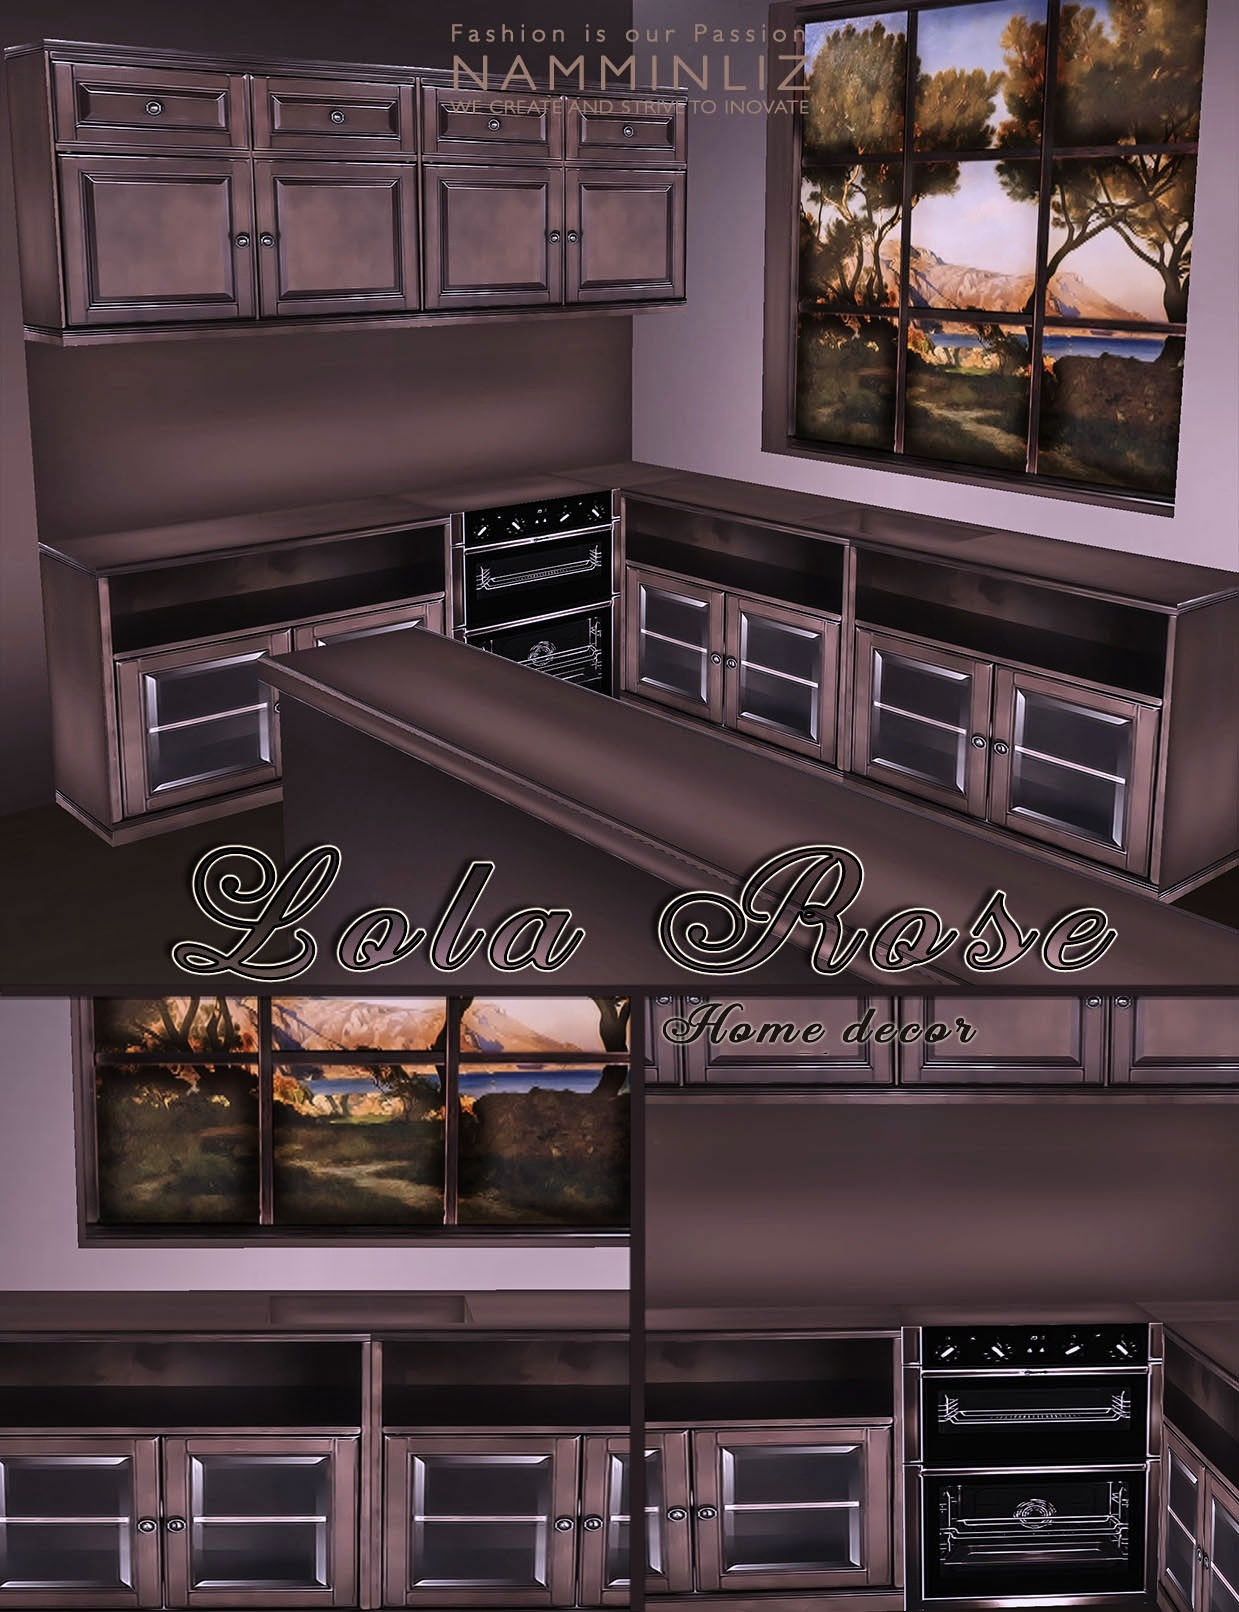 Lola Rose Limited Home Decor Imvu 28 Textures Png Limi